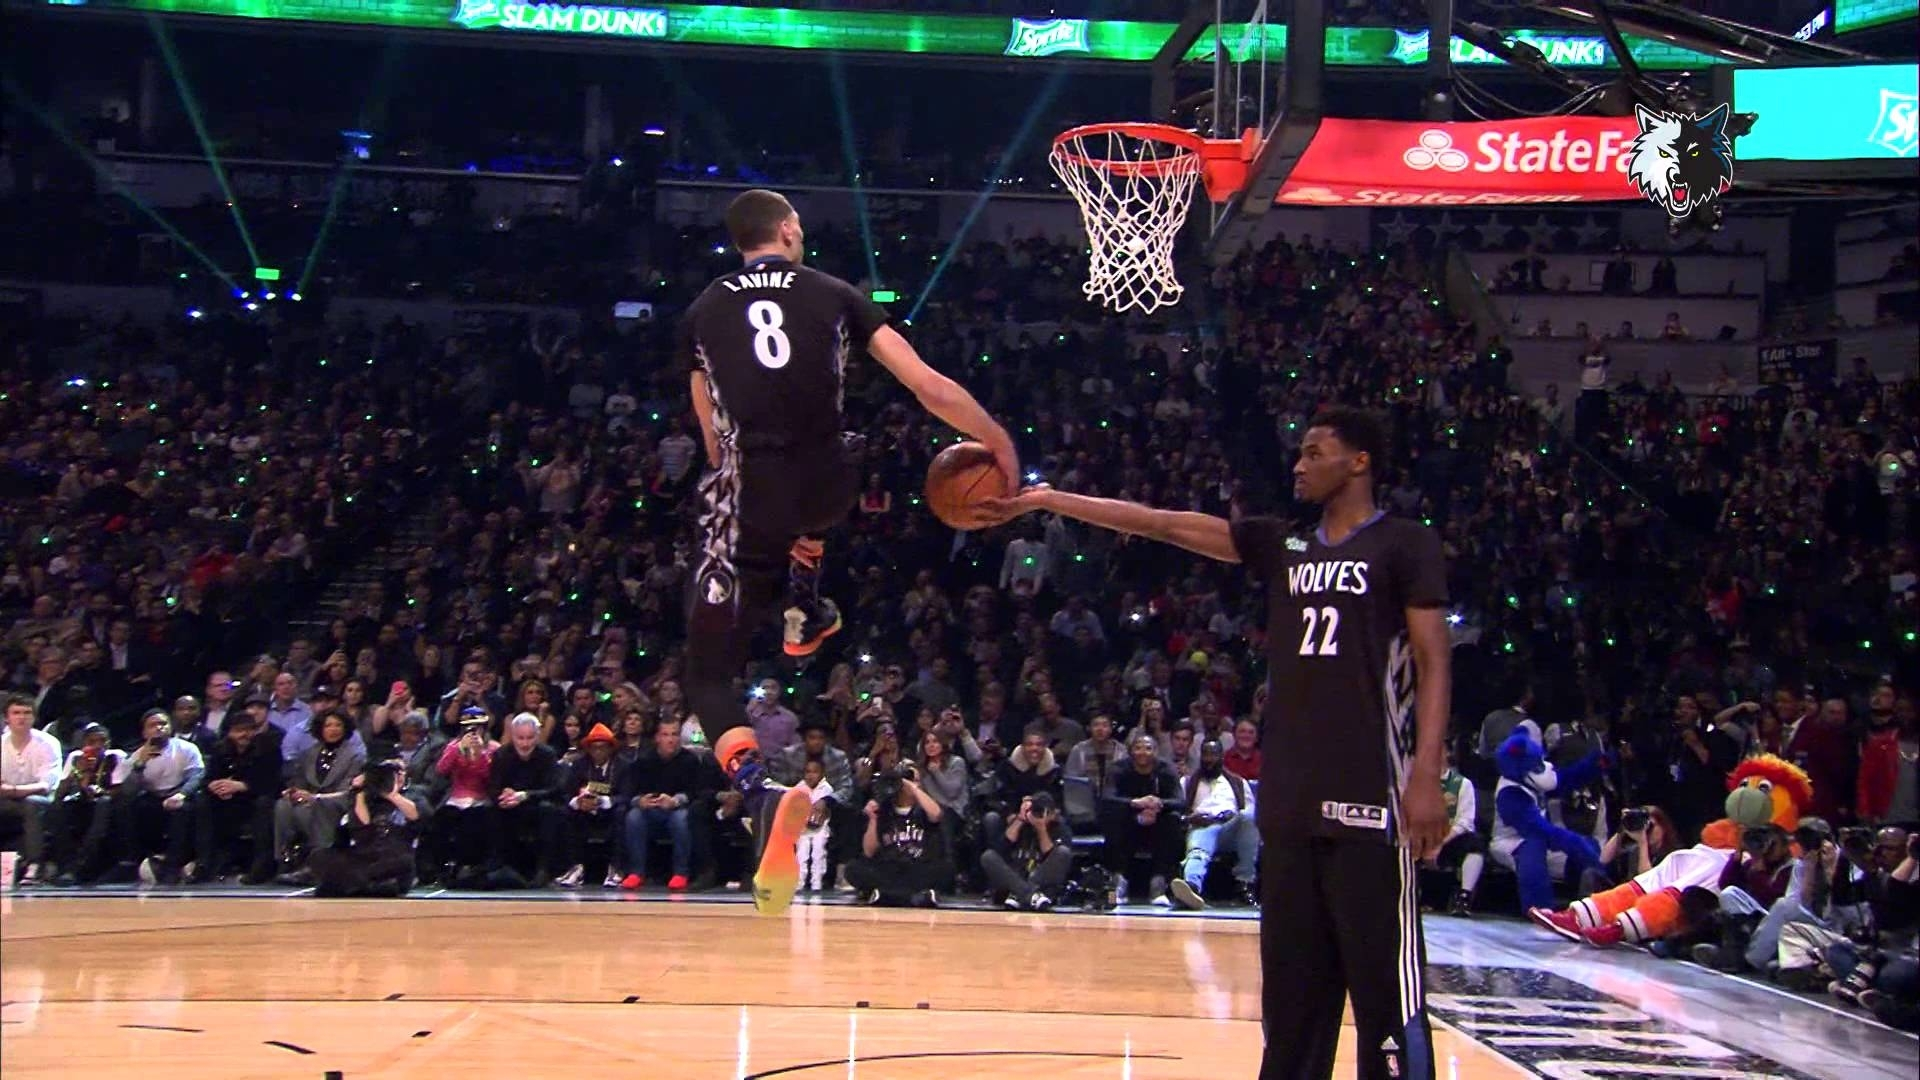 dunk contest behind the scenes | zach lavine - youtube